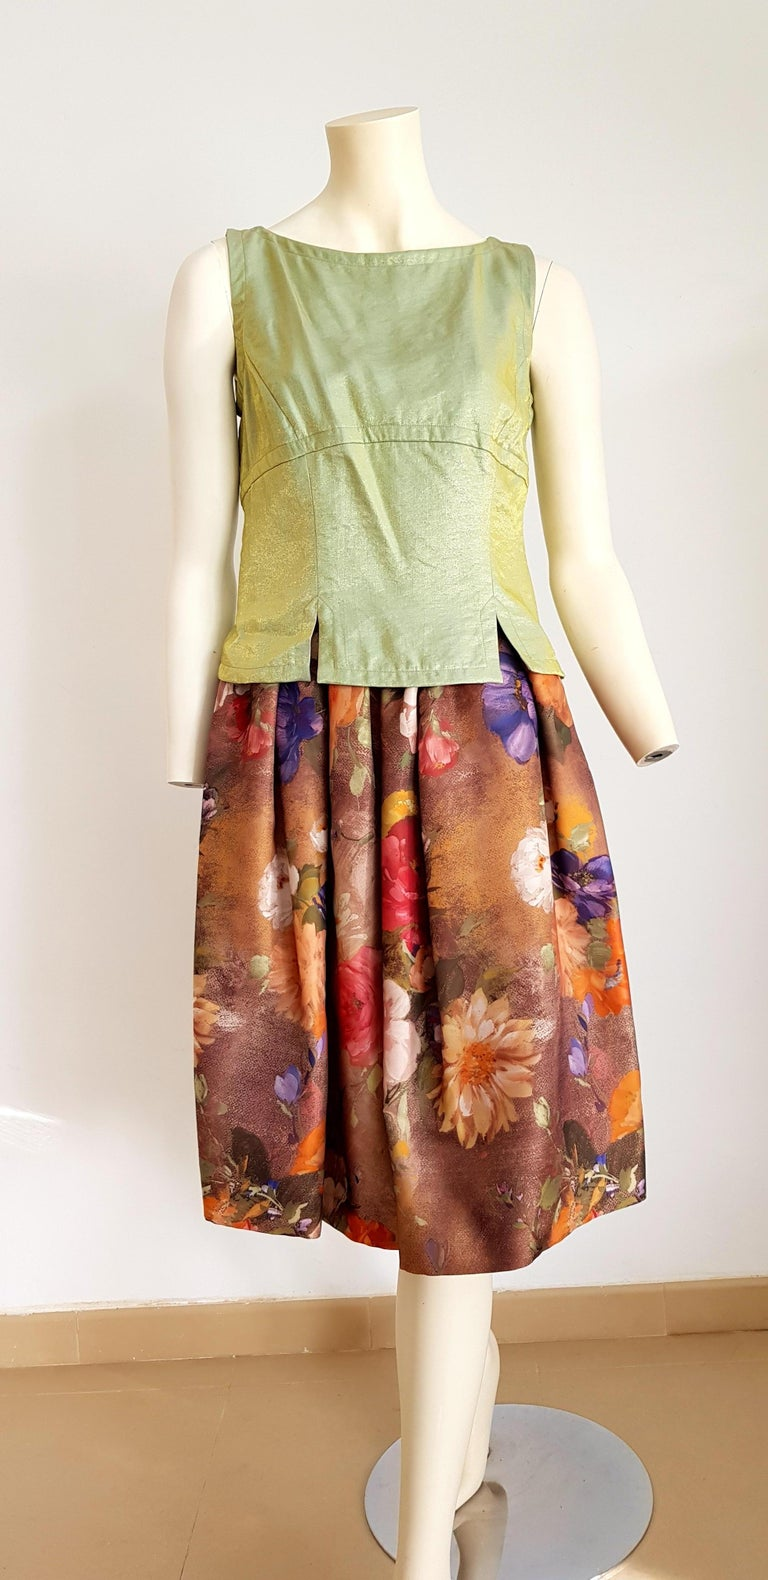 Christian LACROIX Haute Couture, single piece unique design, green with golden reflections the top, artwork floral theme the skirt, ensemble dress - Unworn, New with tags  SIZE: equivalent to about Small / Medium, please review approx measurements